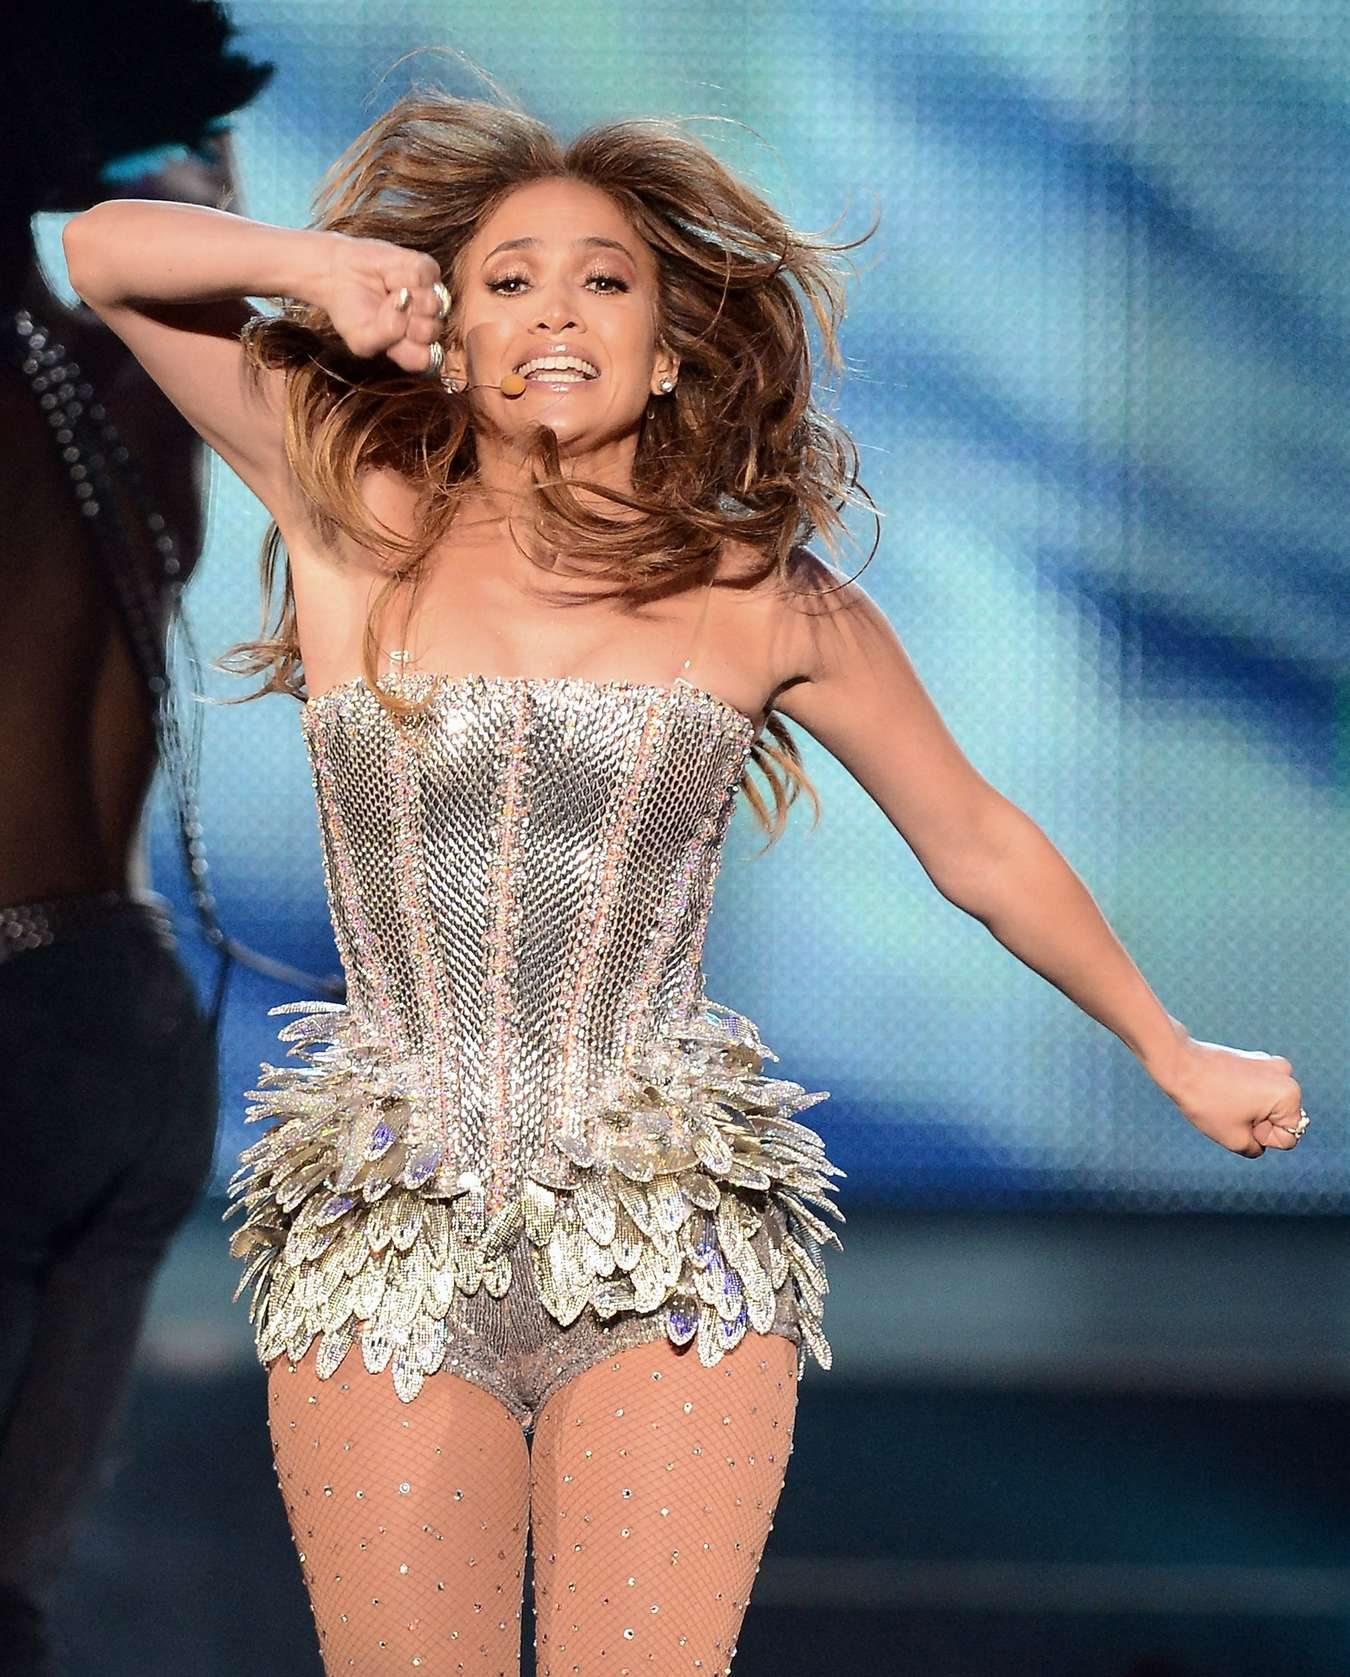 Jennifer lopez hot photos on stage 15 gotceleb Where does jennifer lopez live